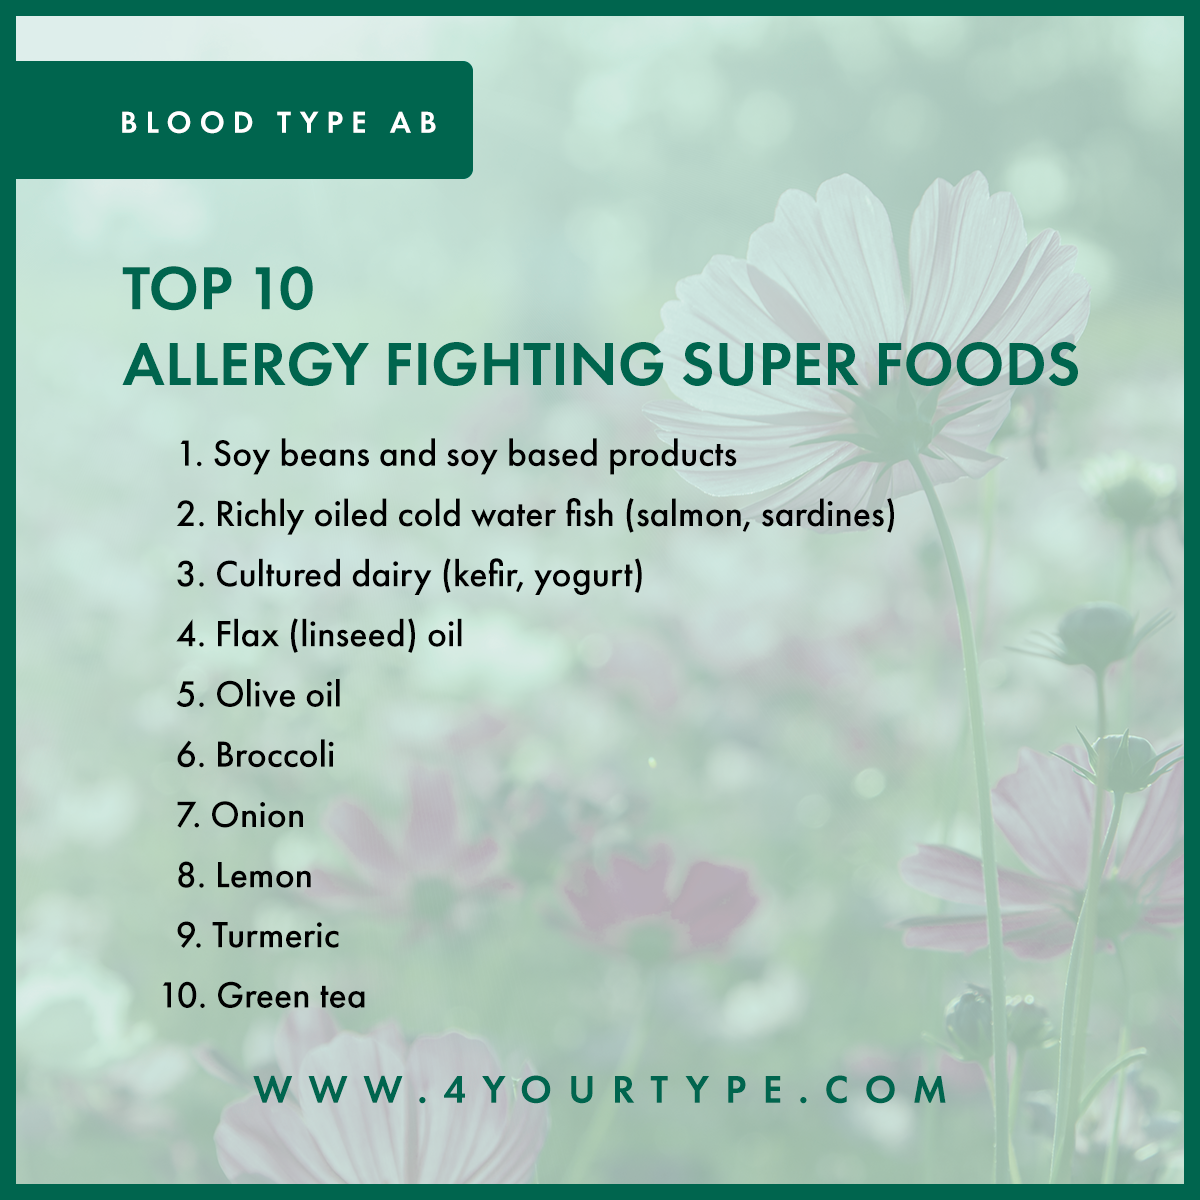 Blood Type AB - Allergy Fighting Foods